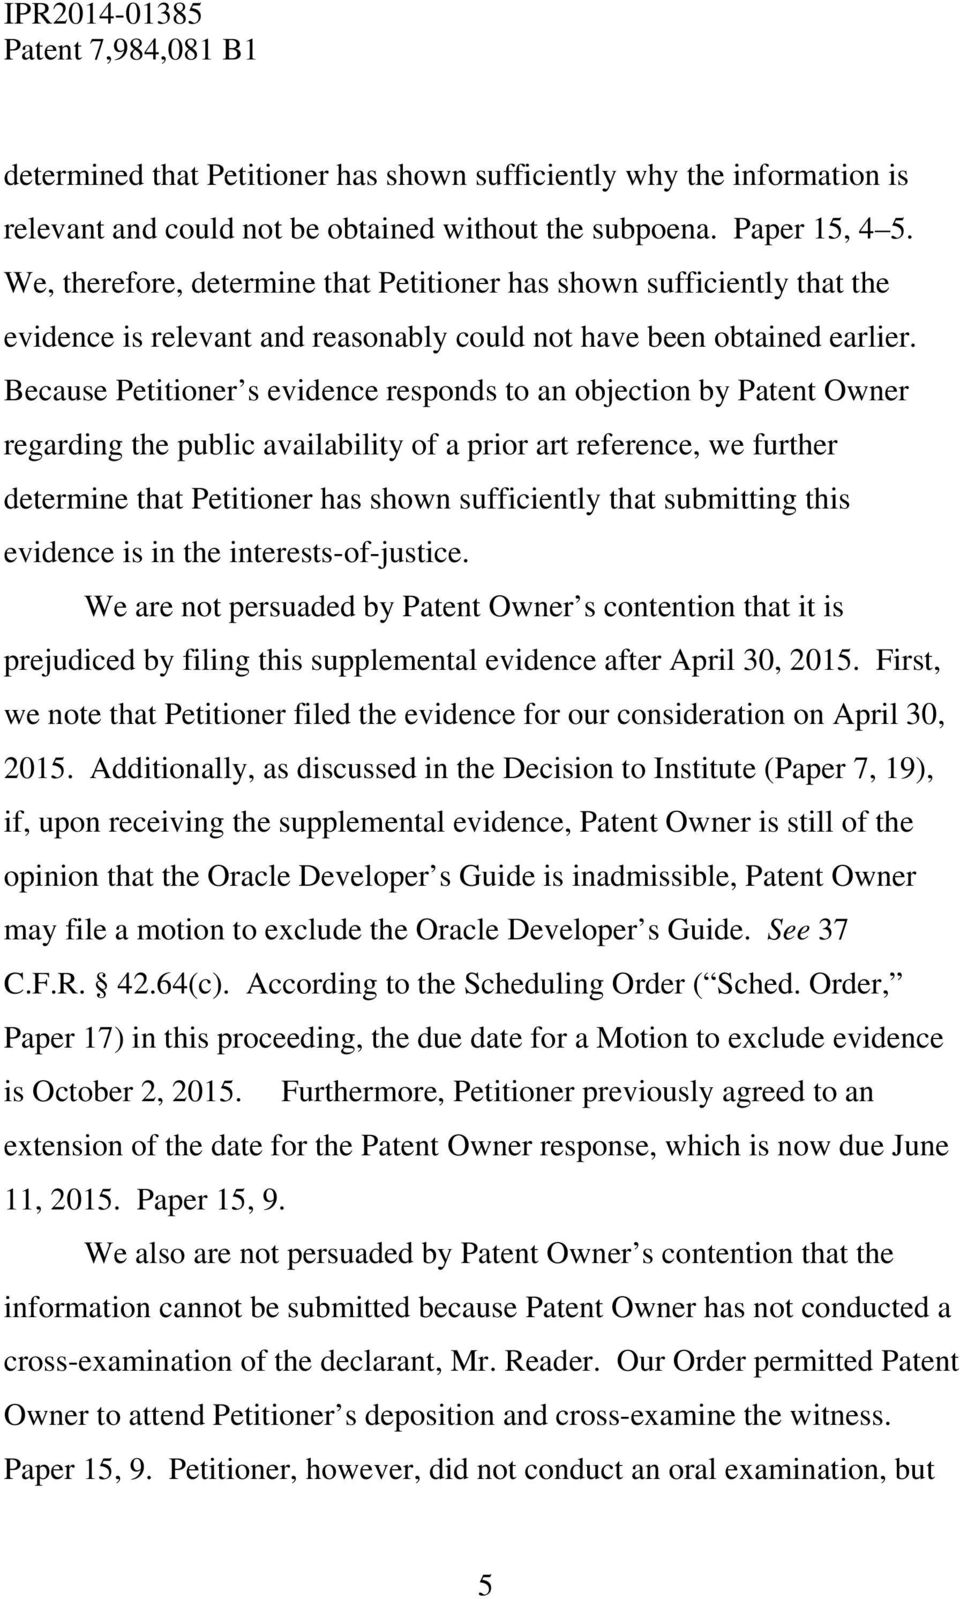 Because Petitioner s evidence responds to an objection by Patent Owner regarding the public availability of a prior art reference, we further determine that Petitioner has shown sufficiently that